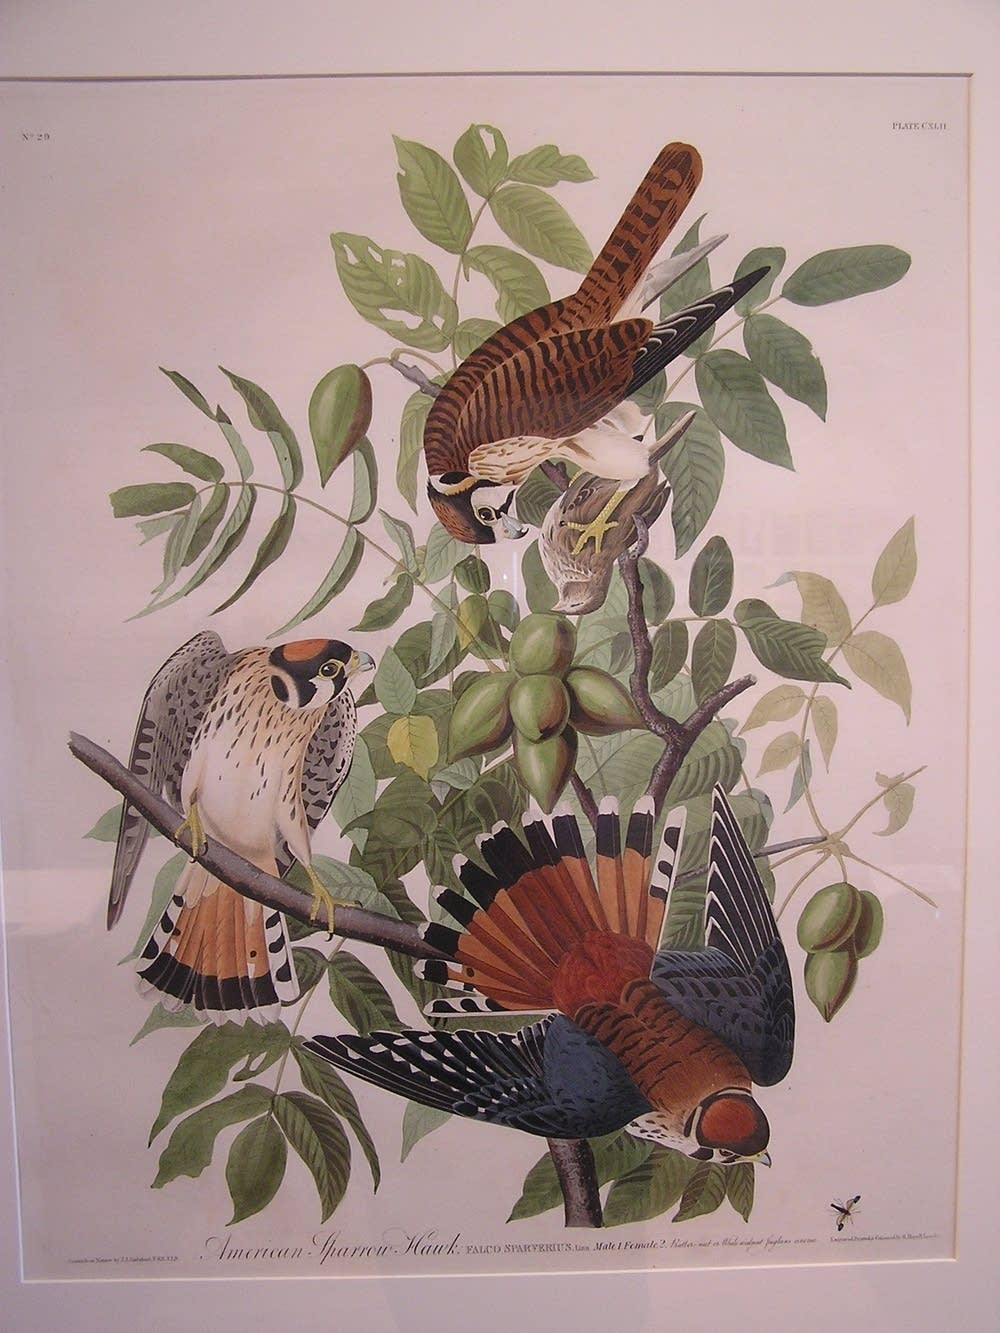 Audubon's Folio of American Birds